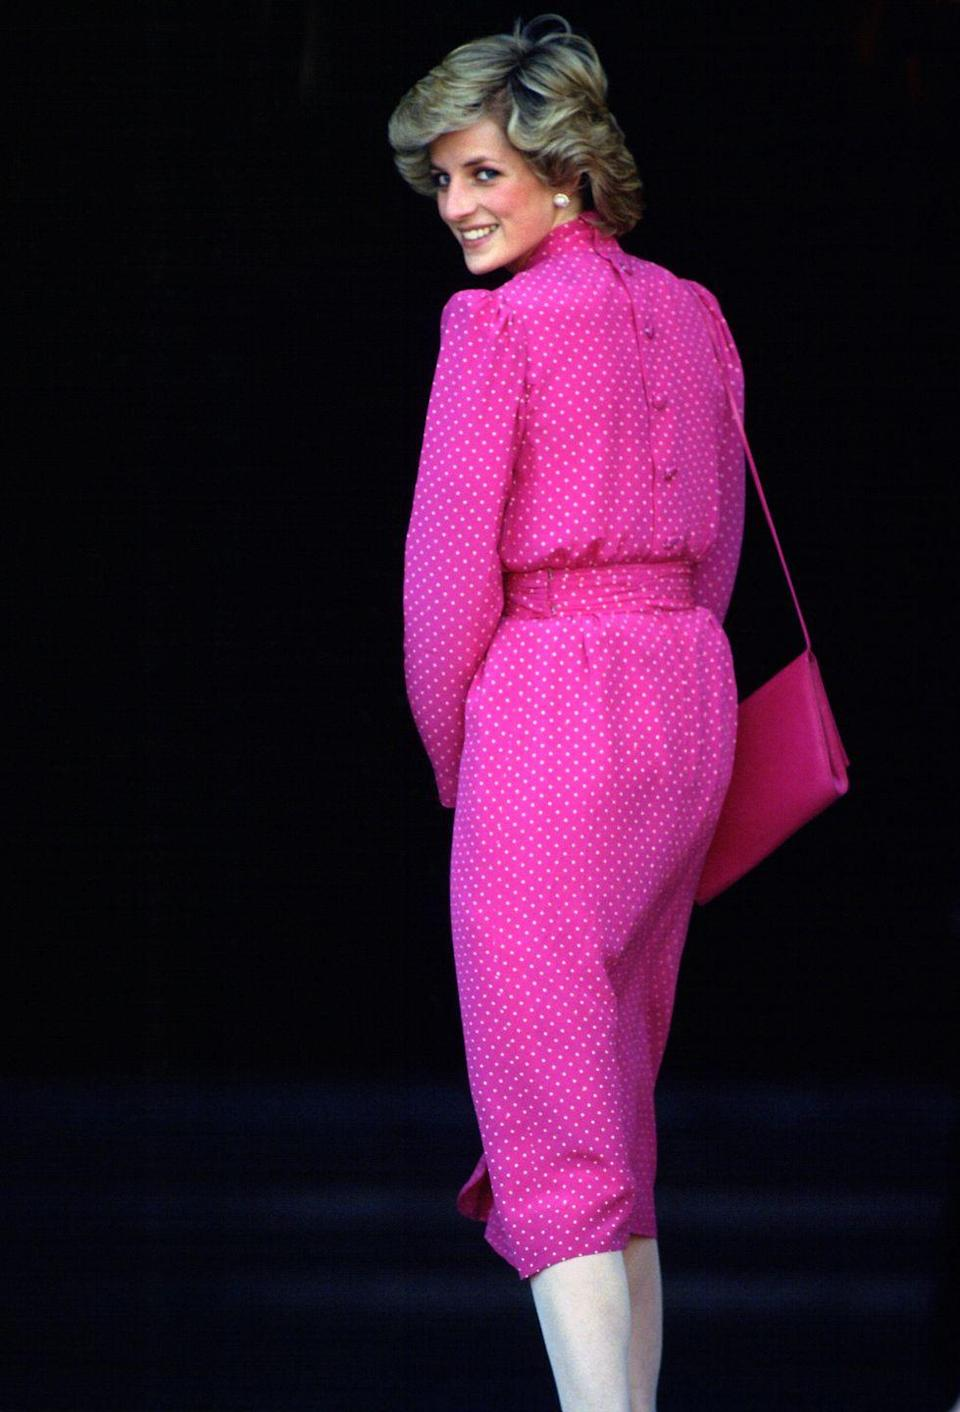 <p>Be still our hearts over this hot pink polka dot knee-length look, complete with matching bag. </p>